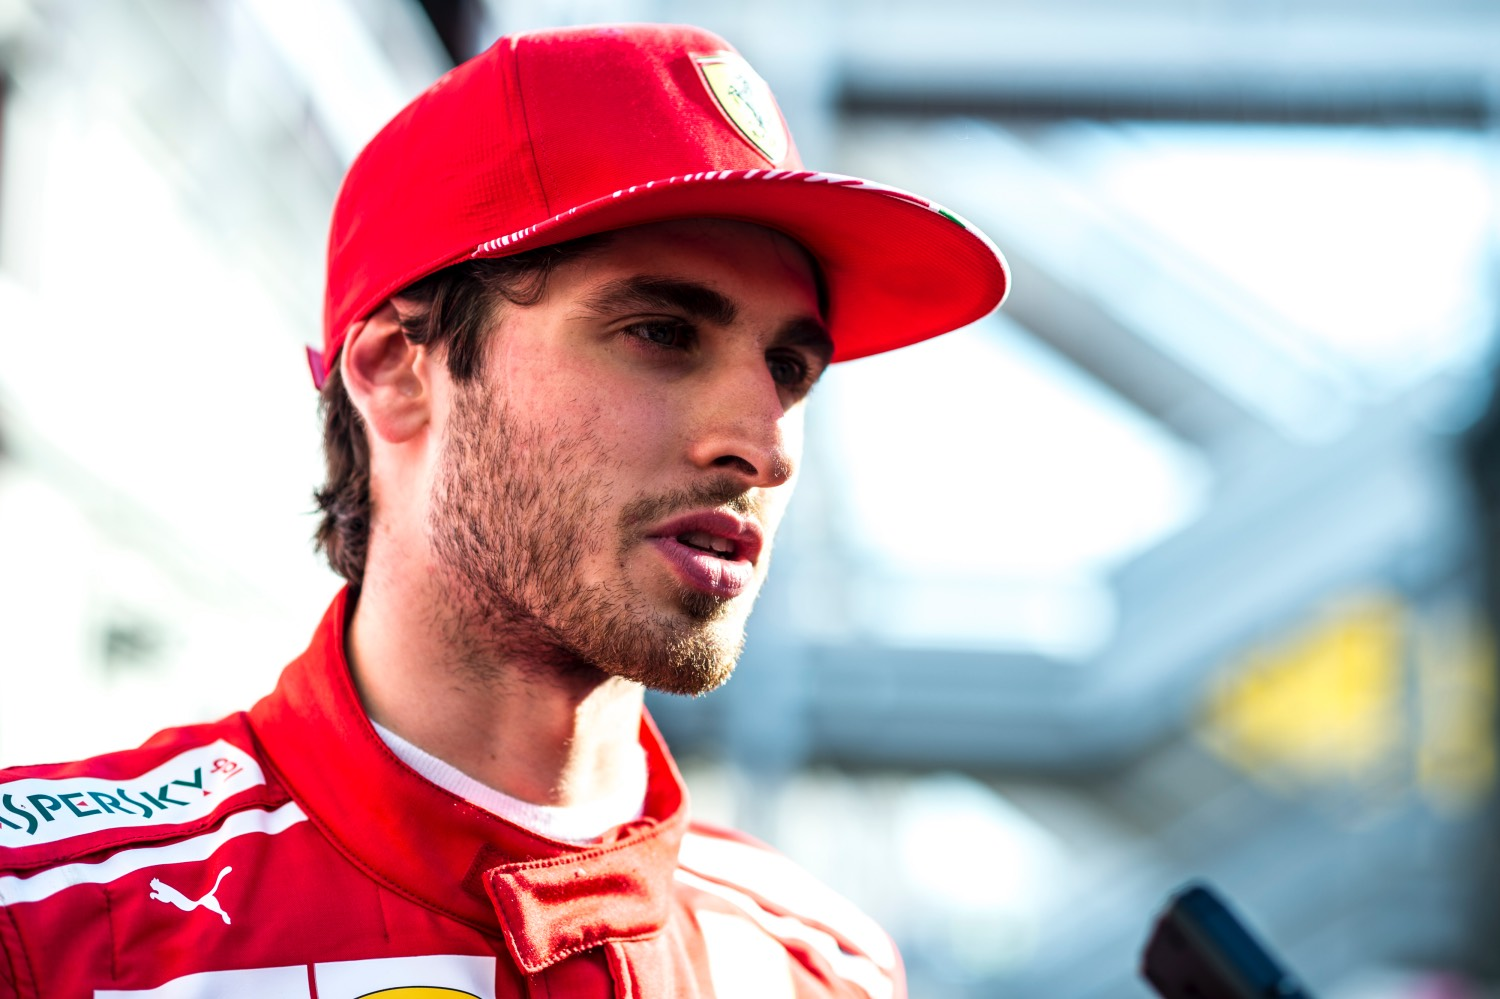 180076-test-in-season-barcelona-giorno-2-giovinazzi_BarcelonaDay2